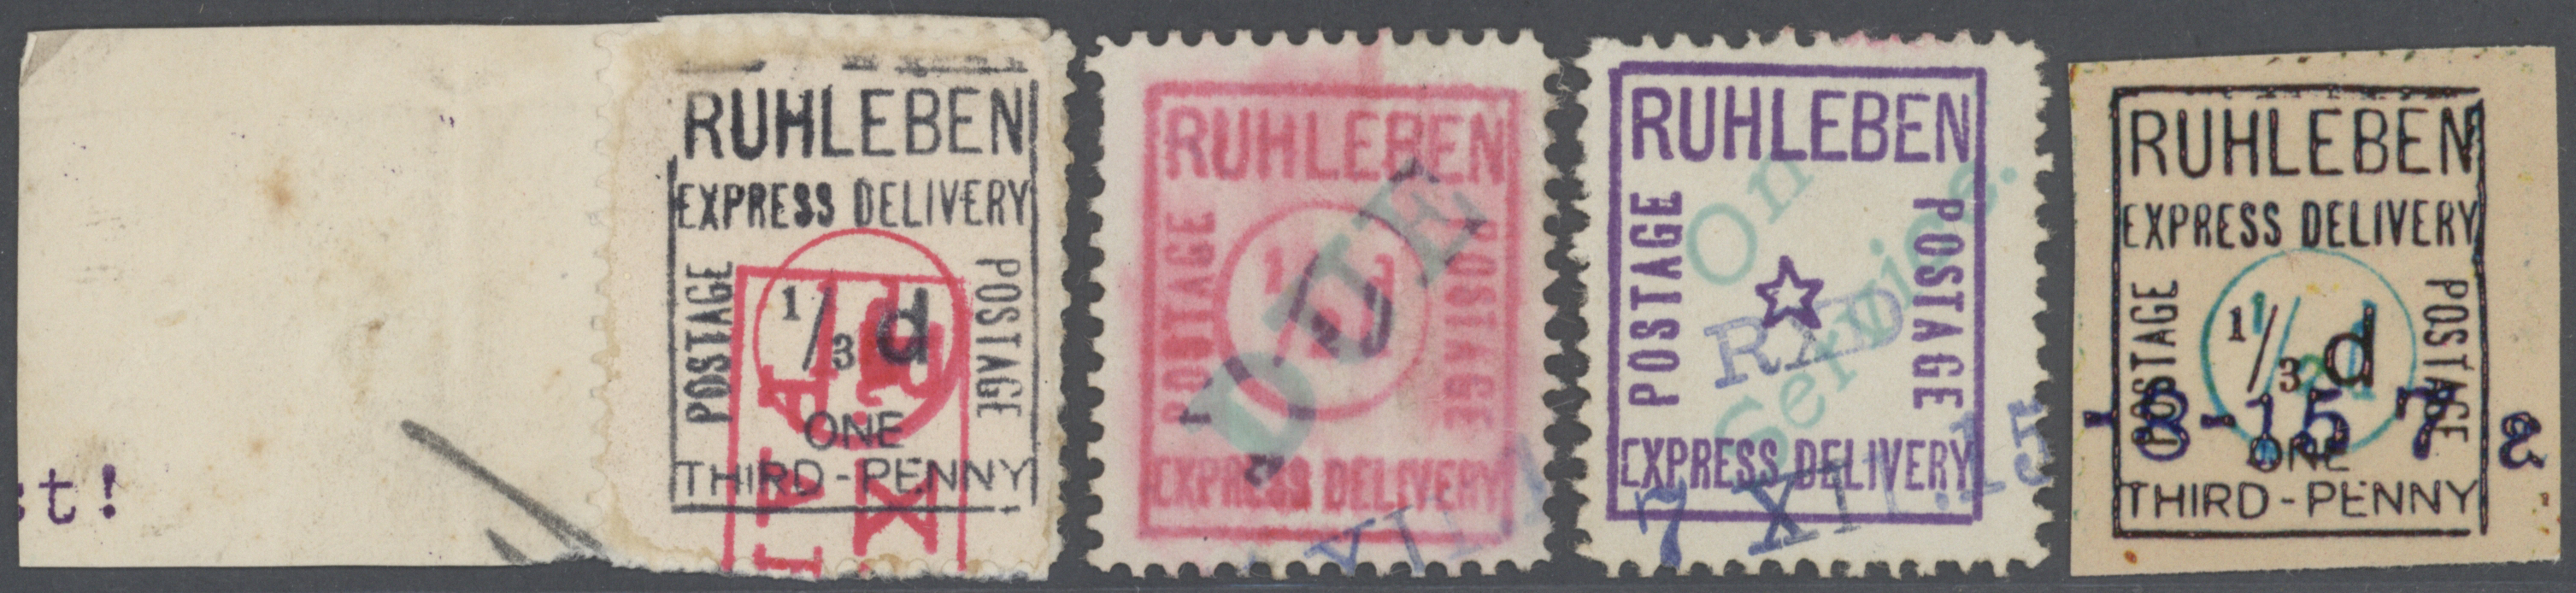 Lot 37645 - lagerpost: ruhleben  -  Auktionshaus Christoph Gärtner GmbH & Co. KG Collections Germany,  Collections Supplement, Surprise boxes #39 Day 7